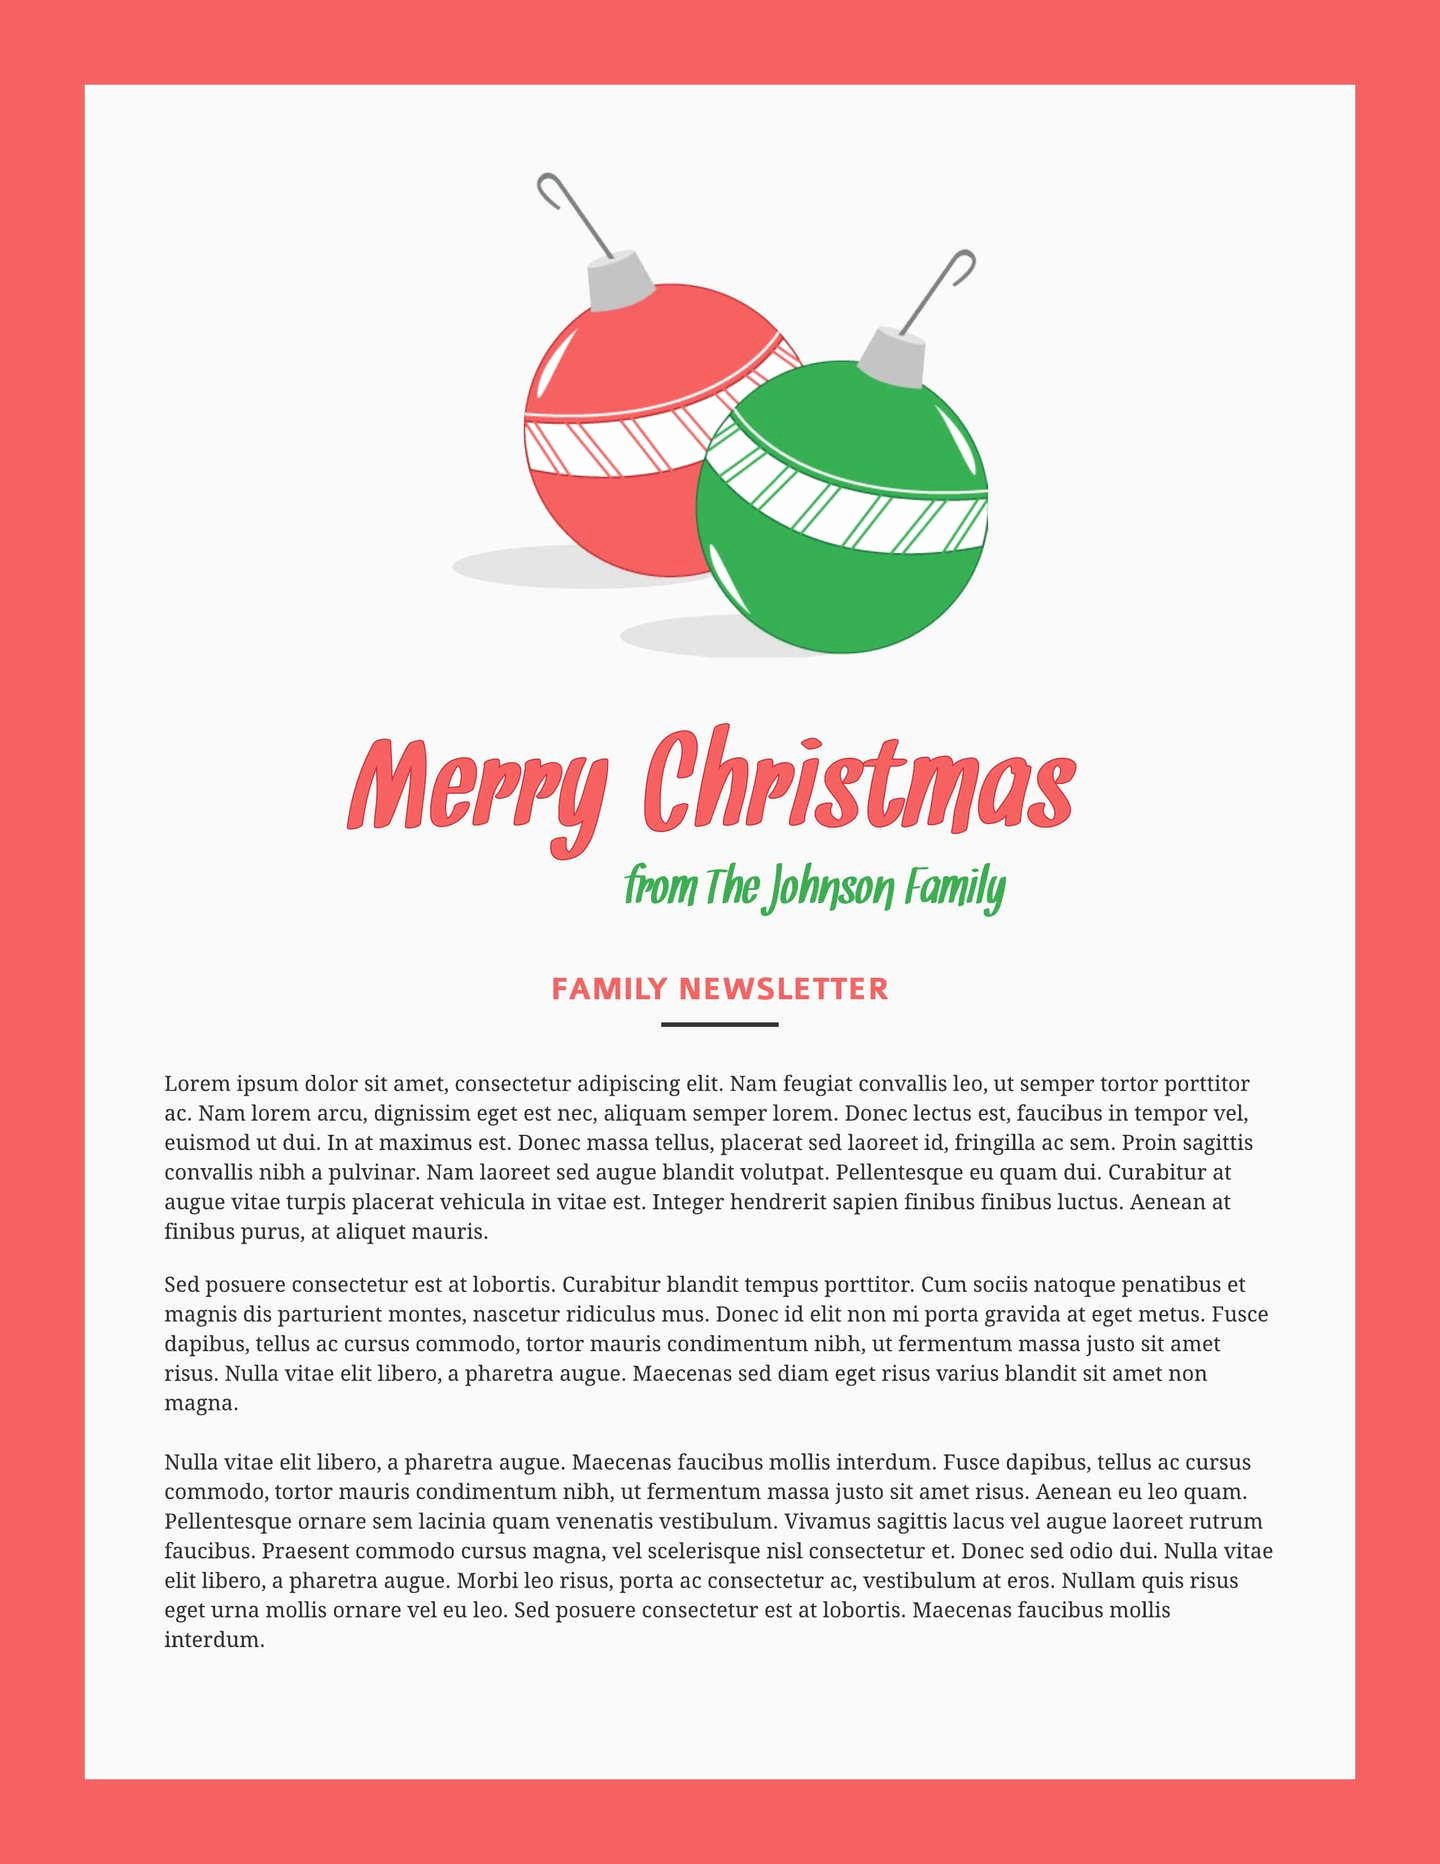 Winter Newsletter Template Free Elegant Print and Win Holiday Sweepstakes